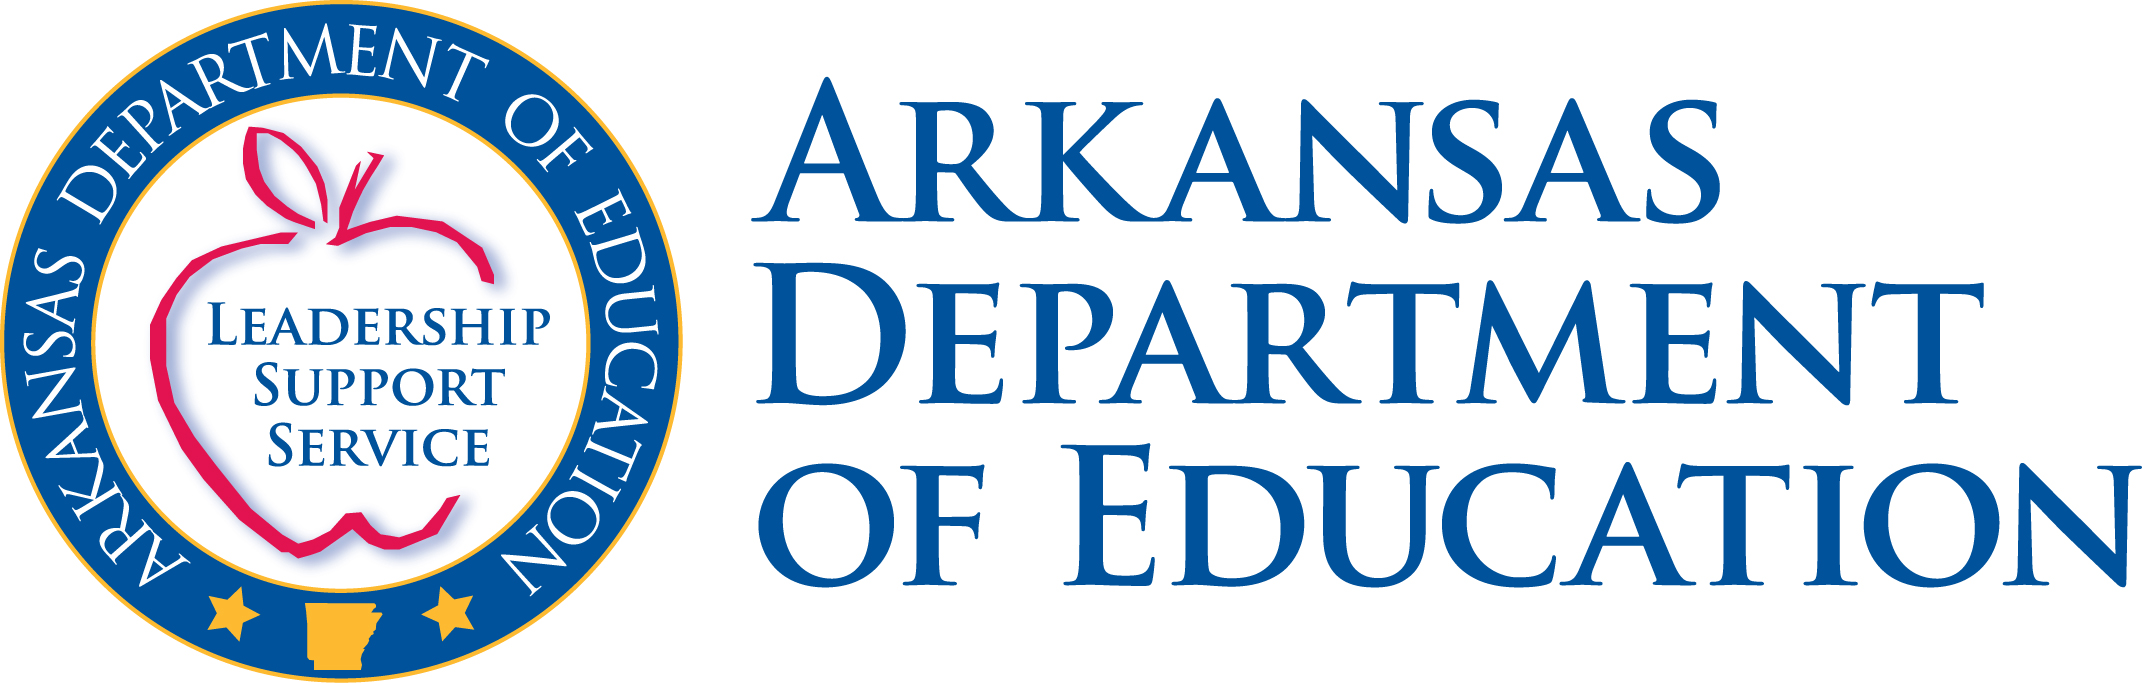 Arkansas Dept of Edu logo website link